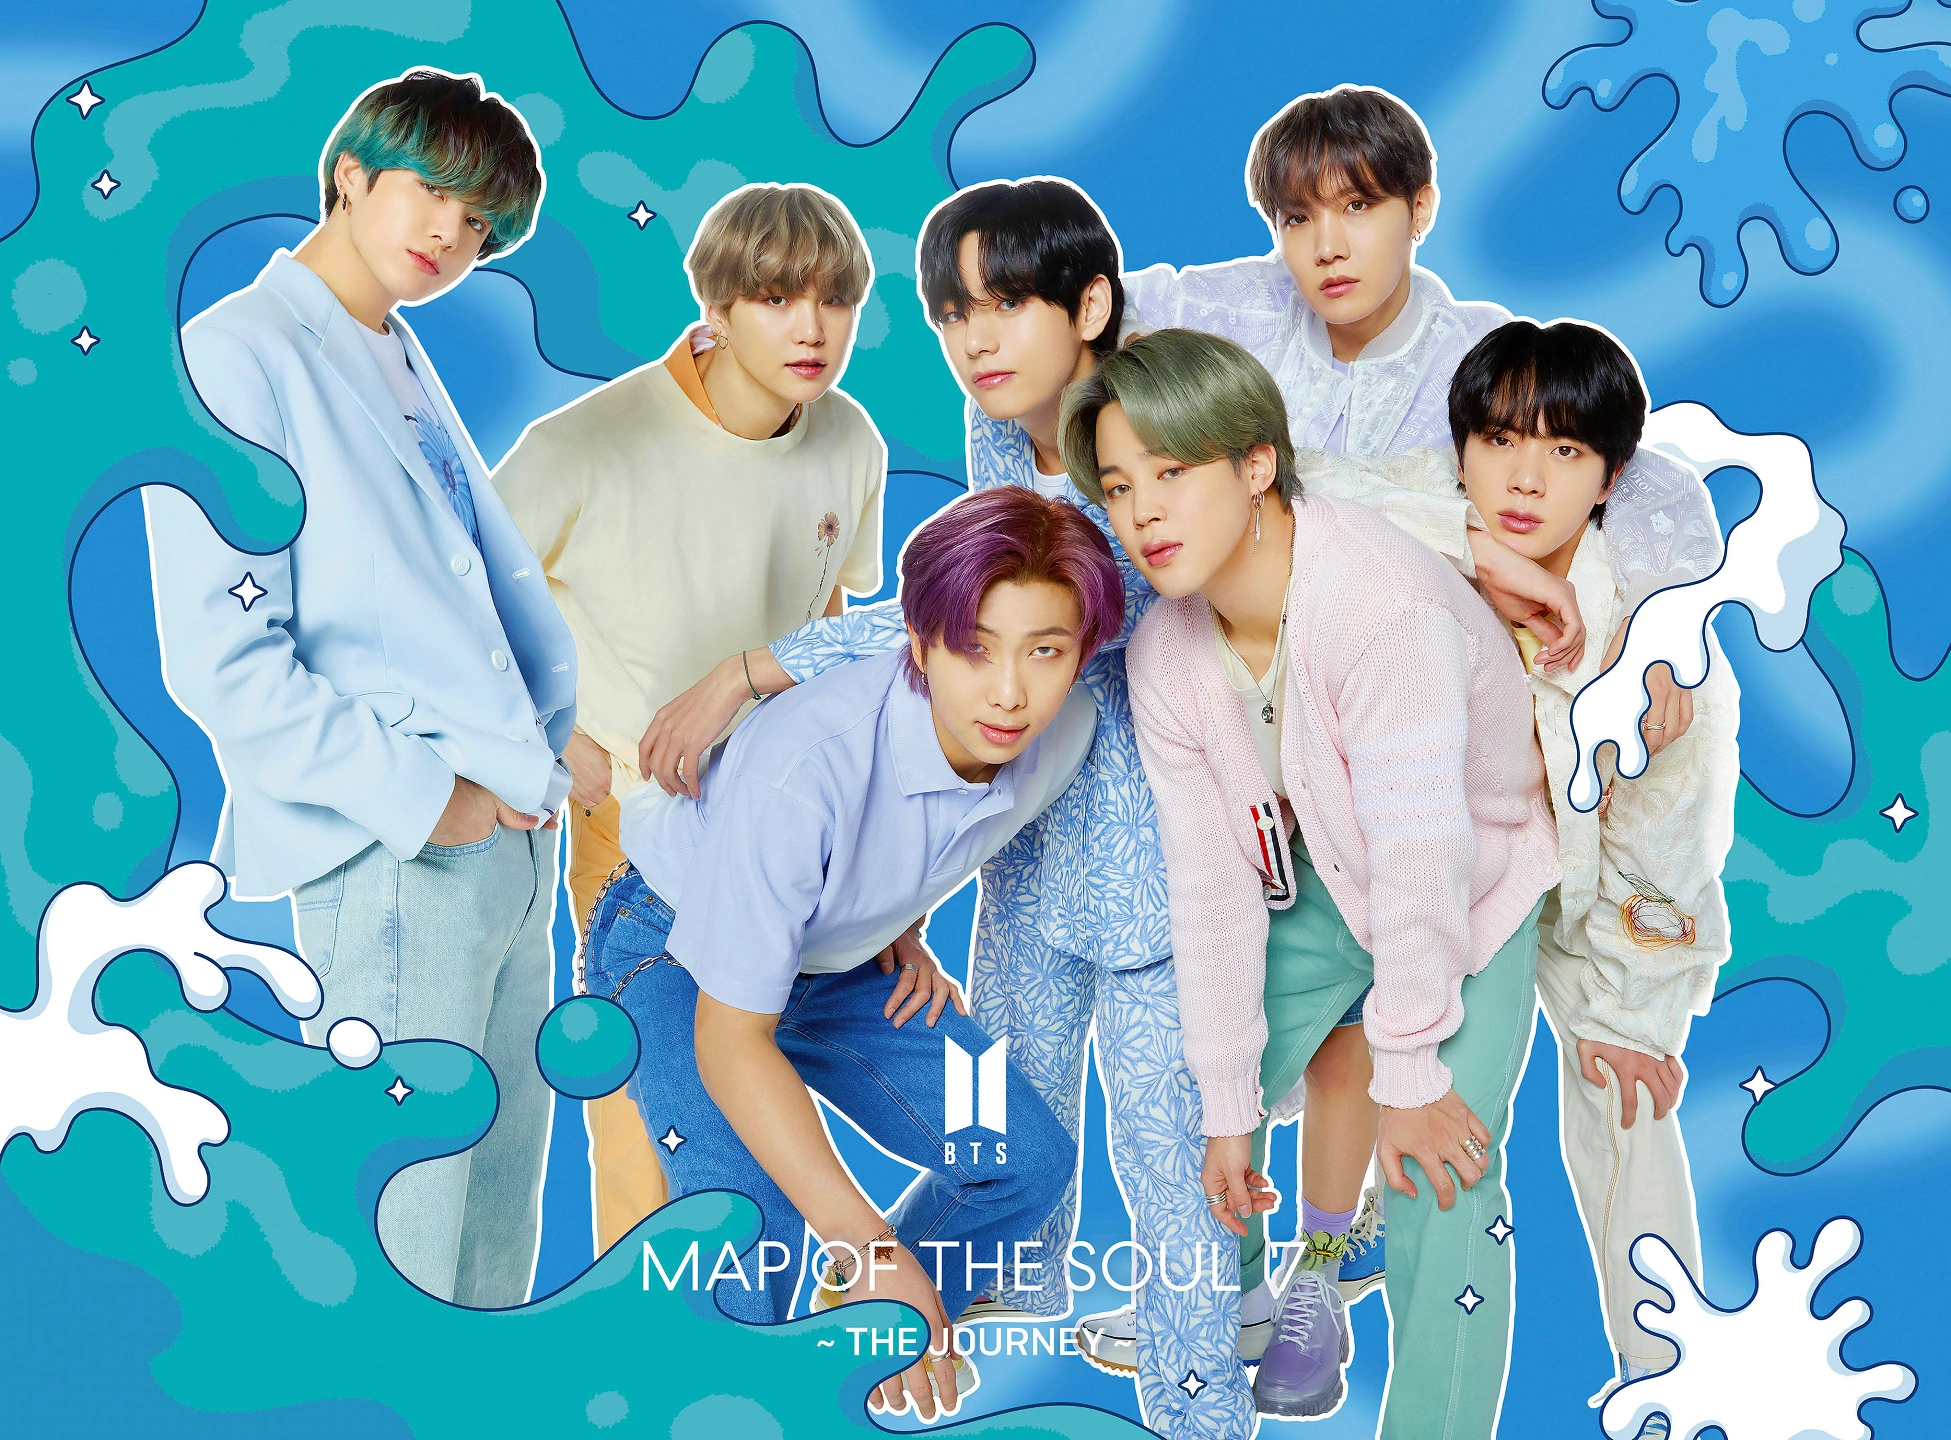 BTS Map of the Soul 7 The Journey Limited Edition D album cover.png